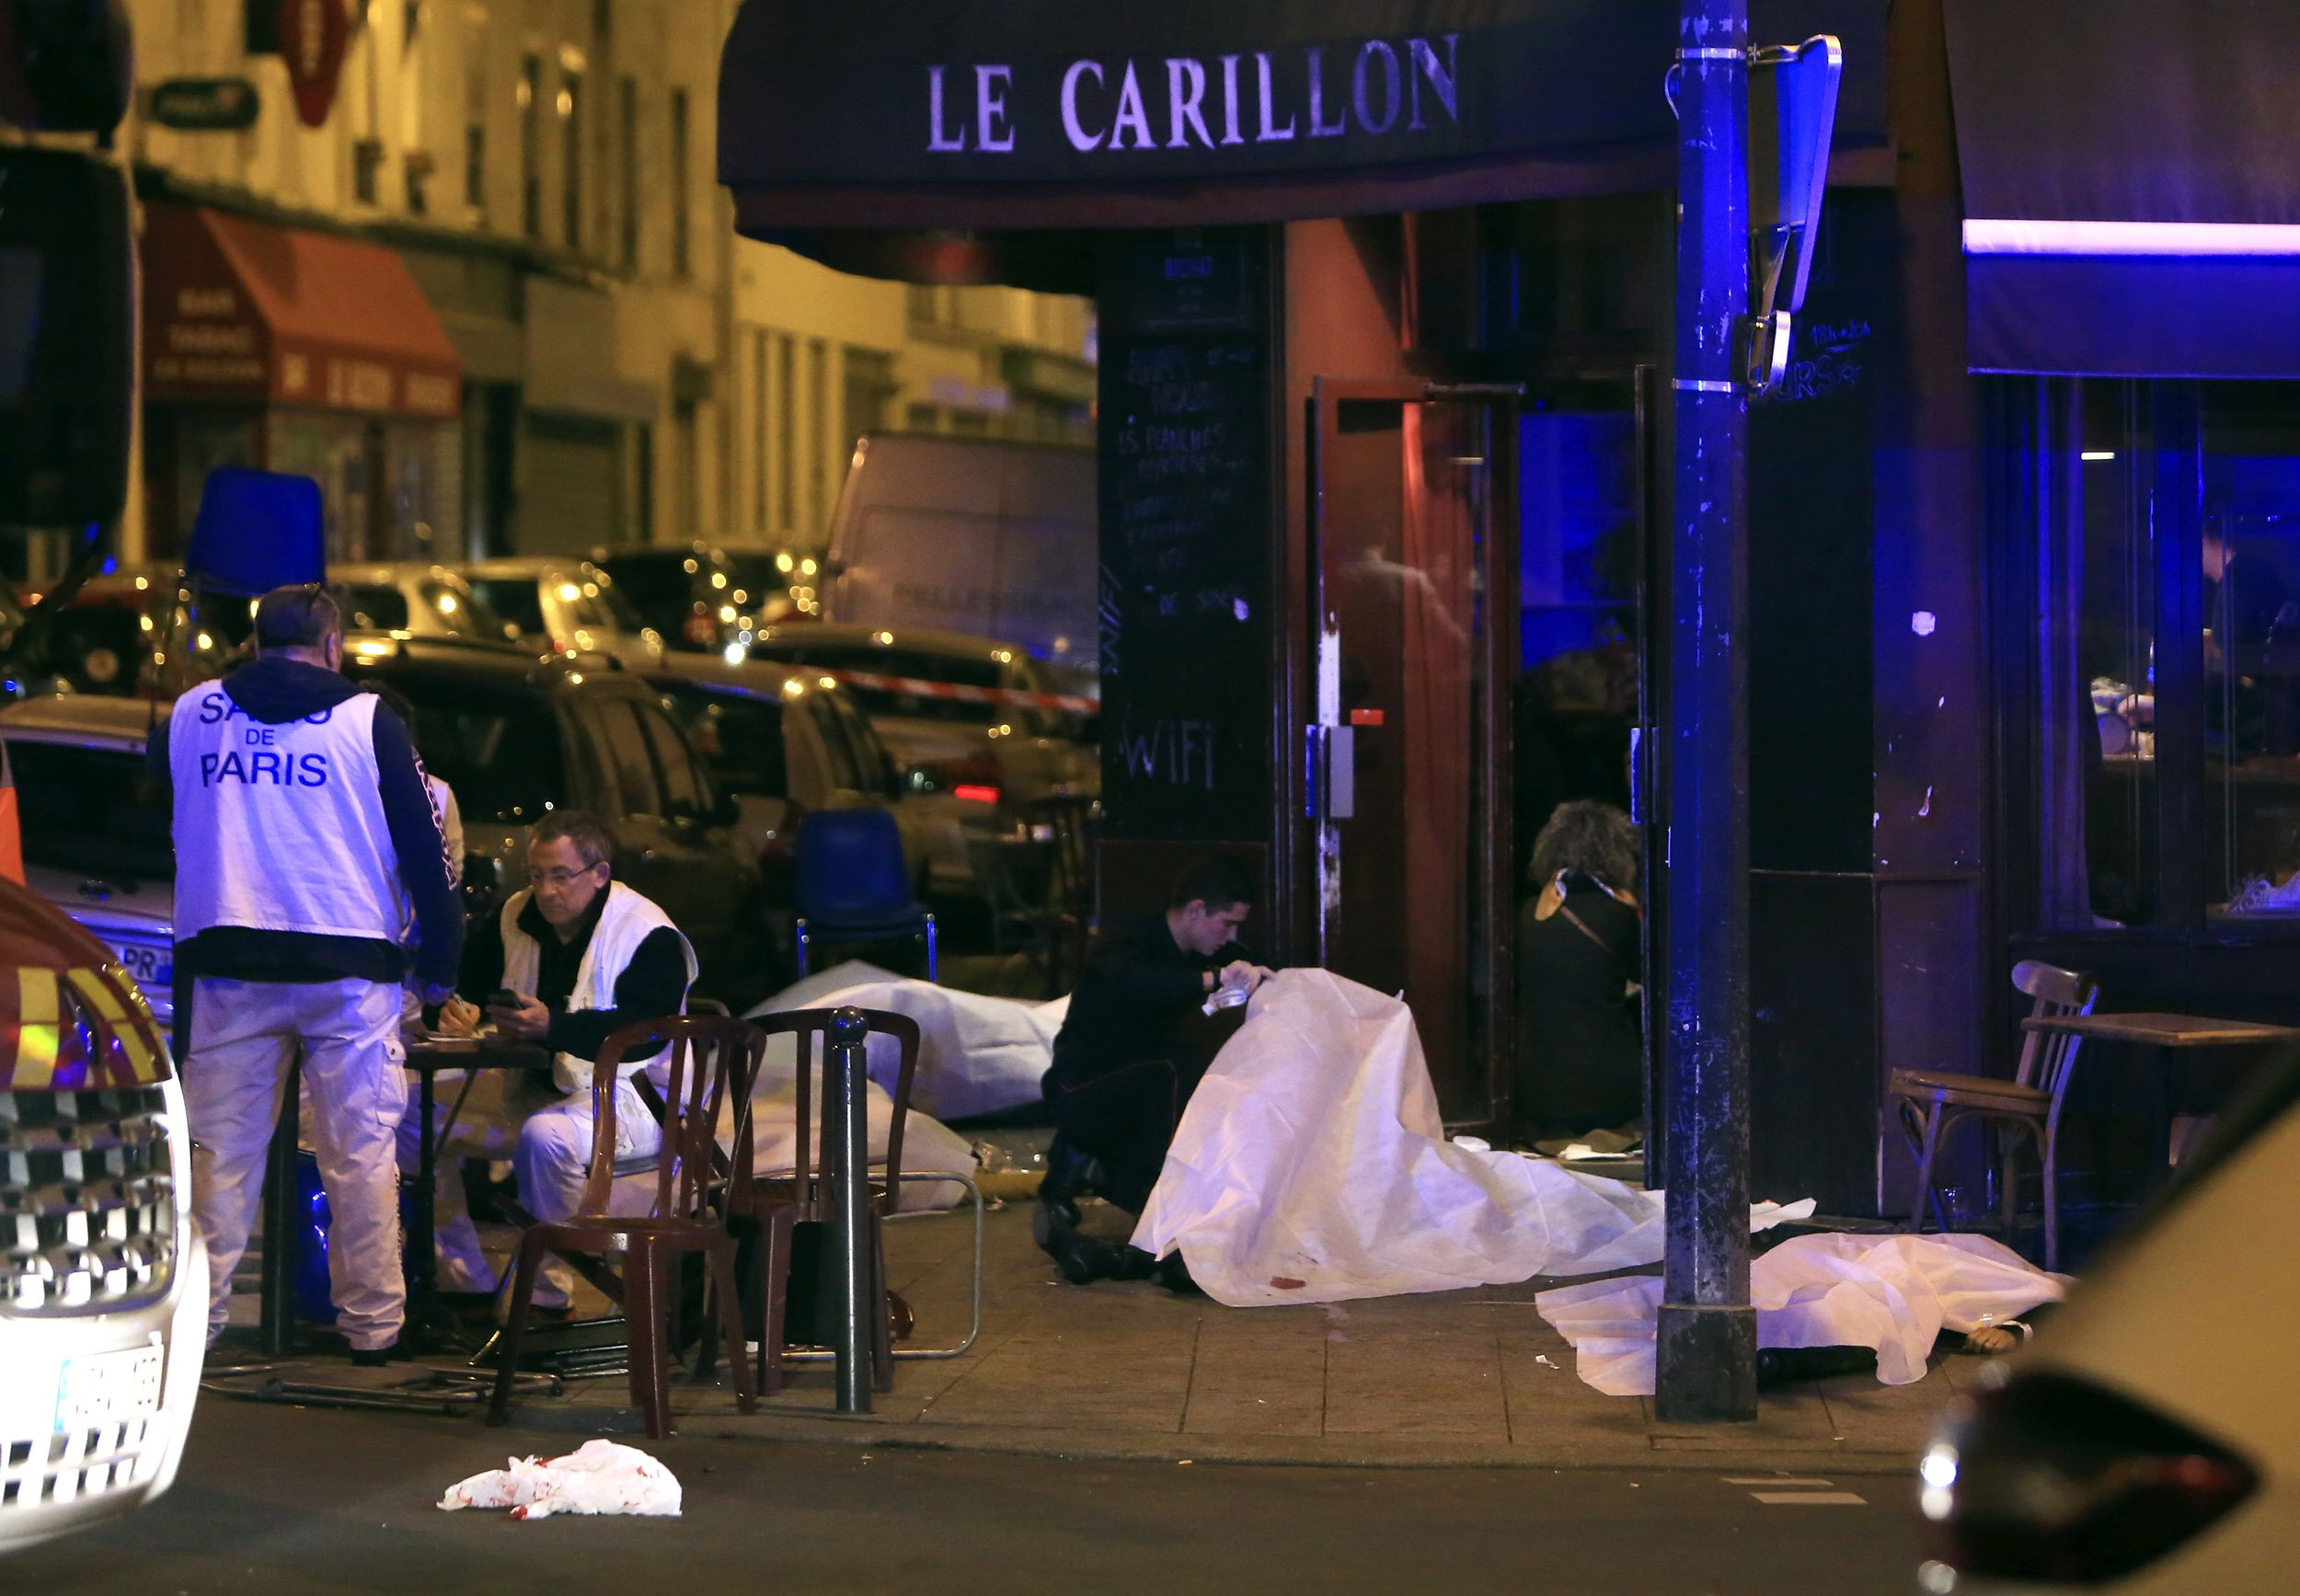 11_13_ParisShooting_01